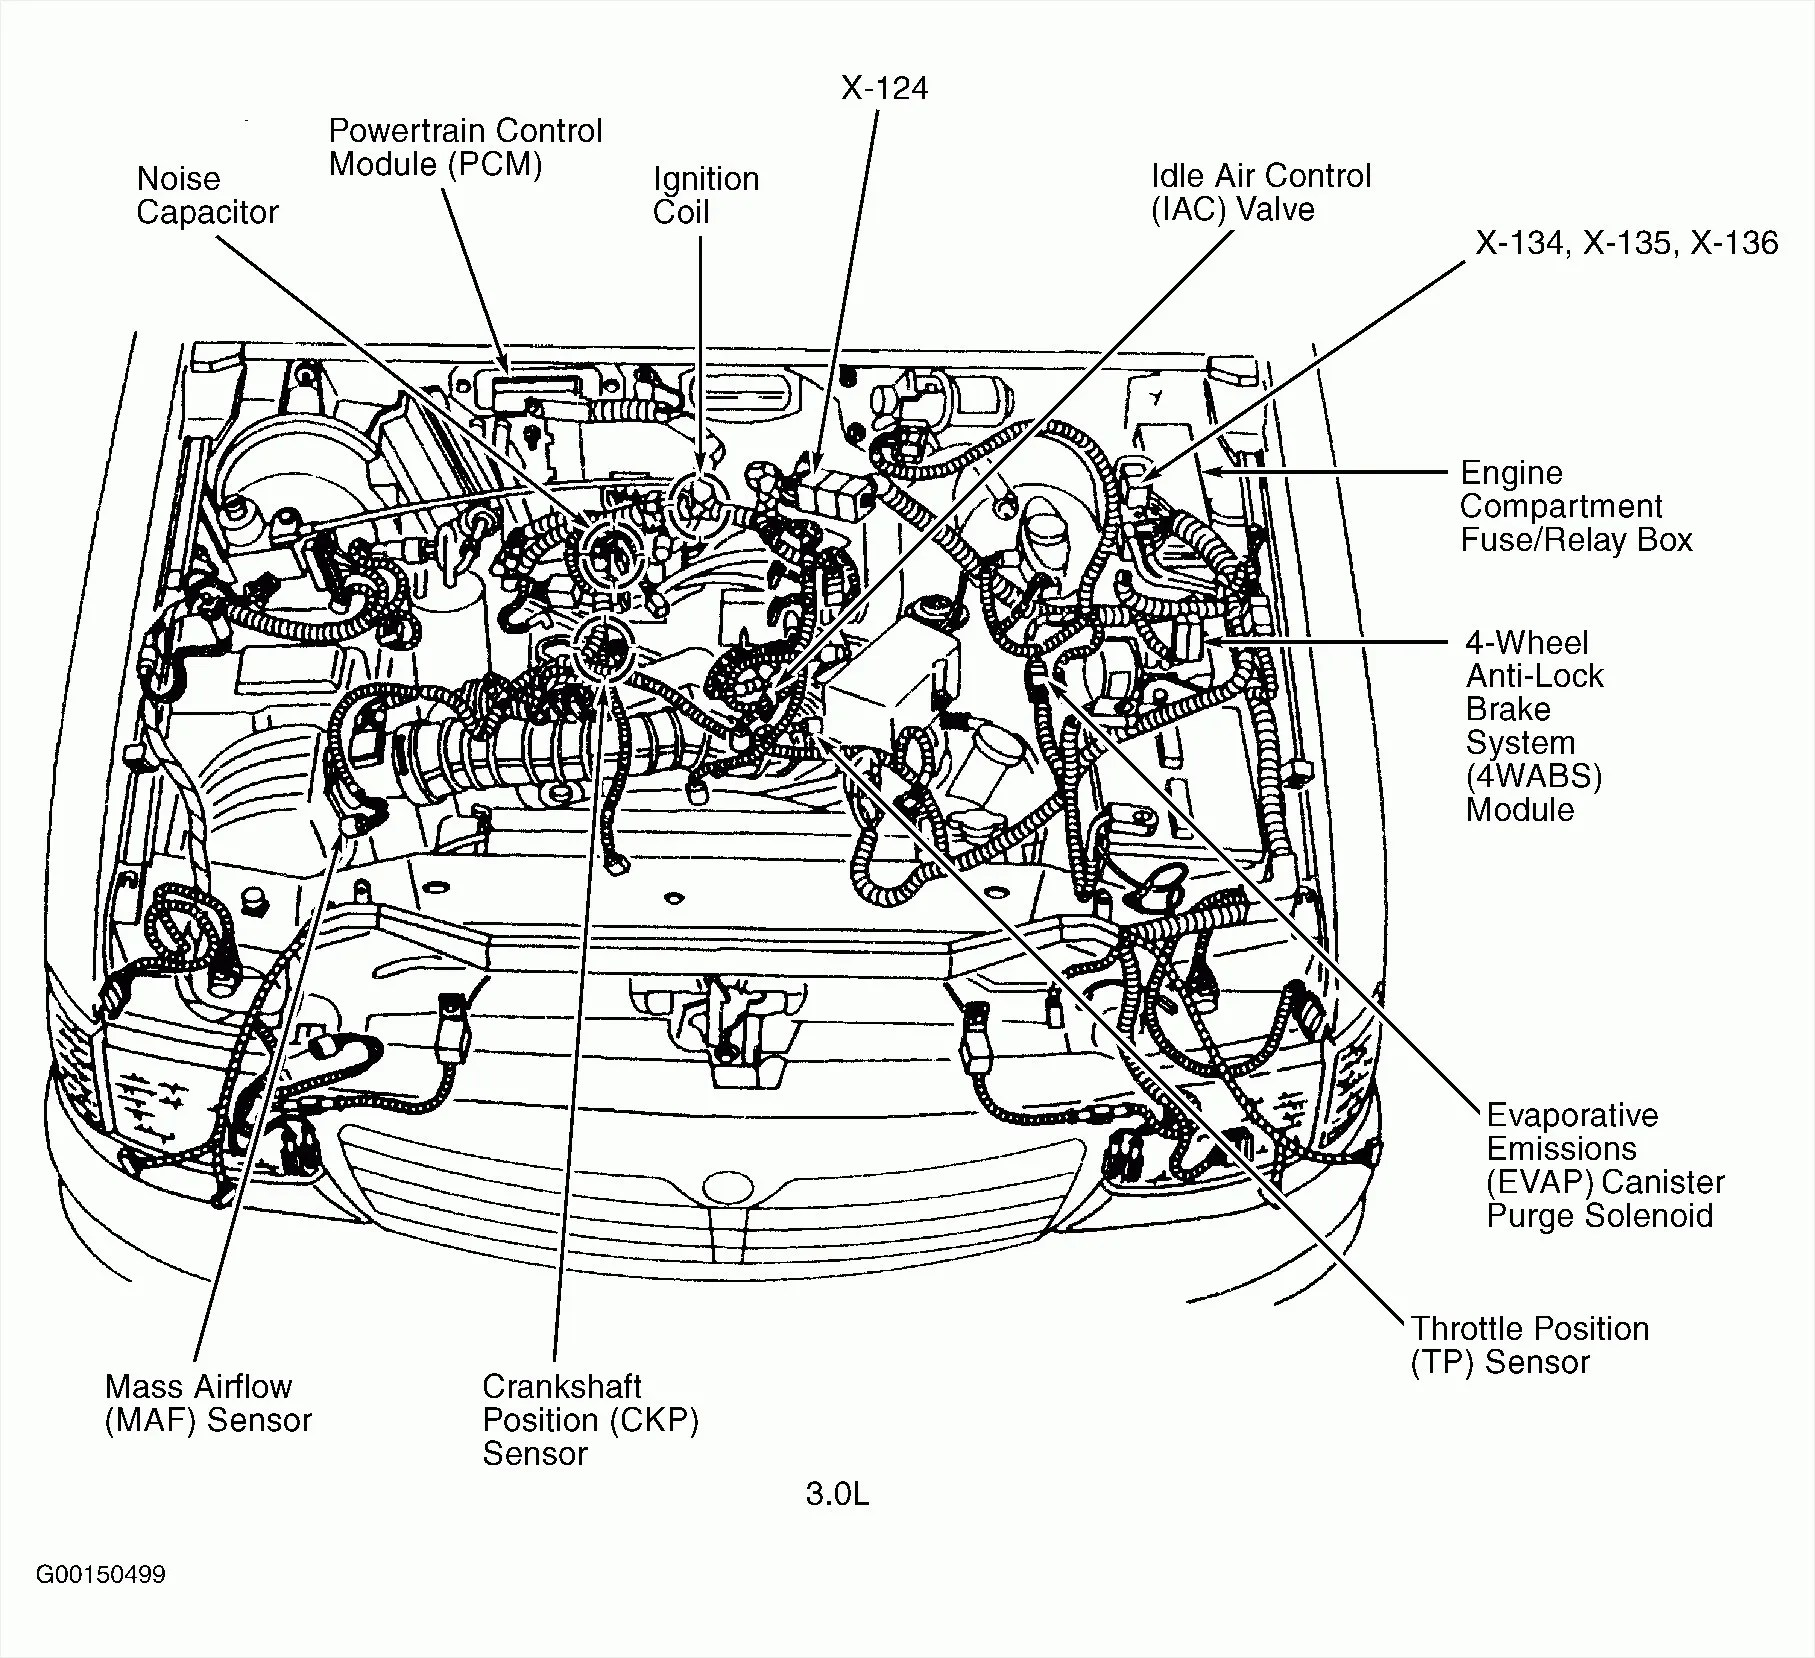 hight resolution of 1996 mercury grand marquis engine diagram wiring diagram centre 1996 grand marquis fuse diagram